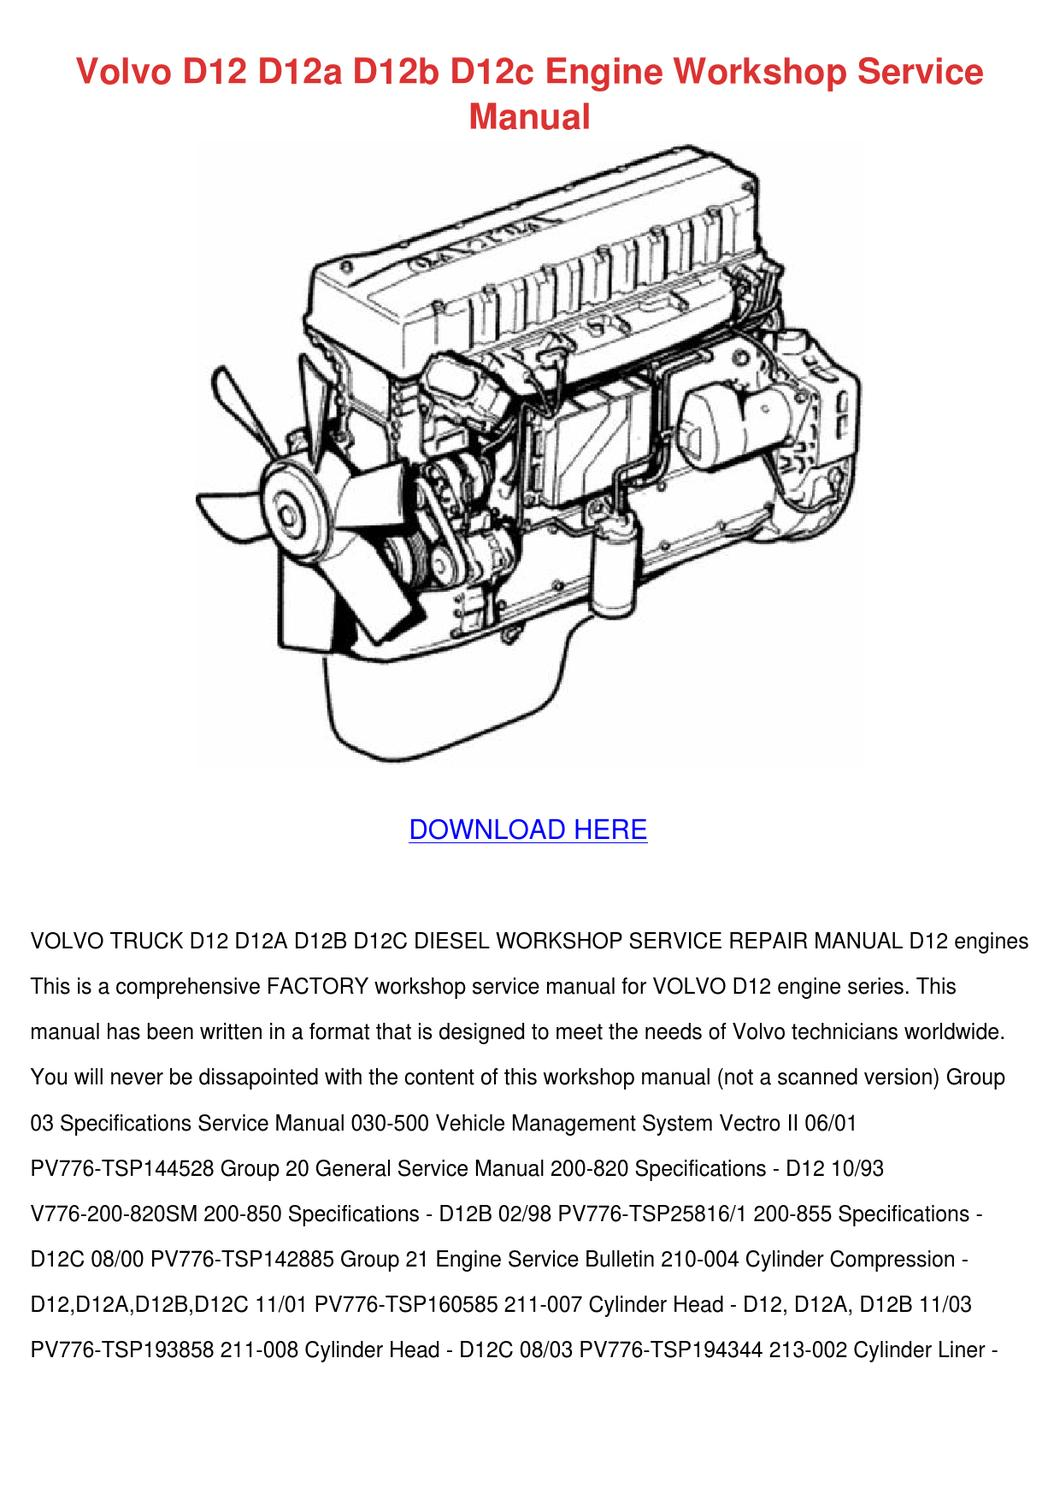 volvo d12 d12a d12b d12c engine workshop serv by simonesheridan - issuu  issuu